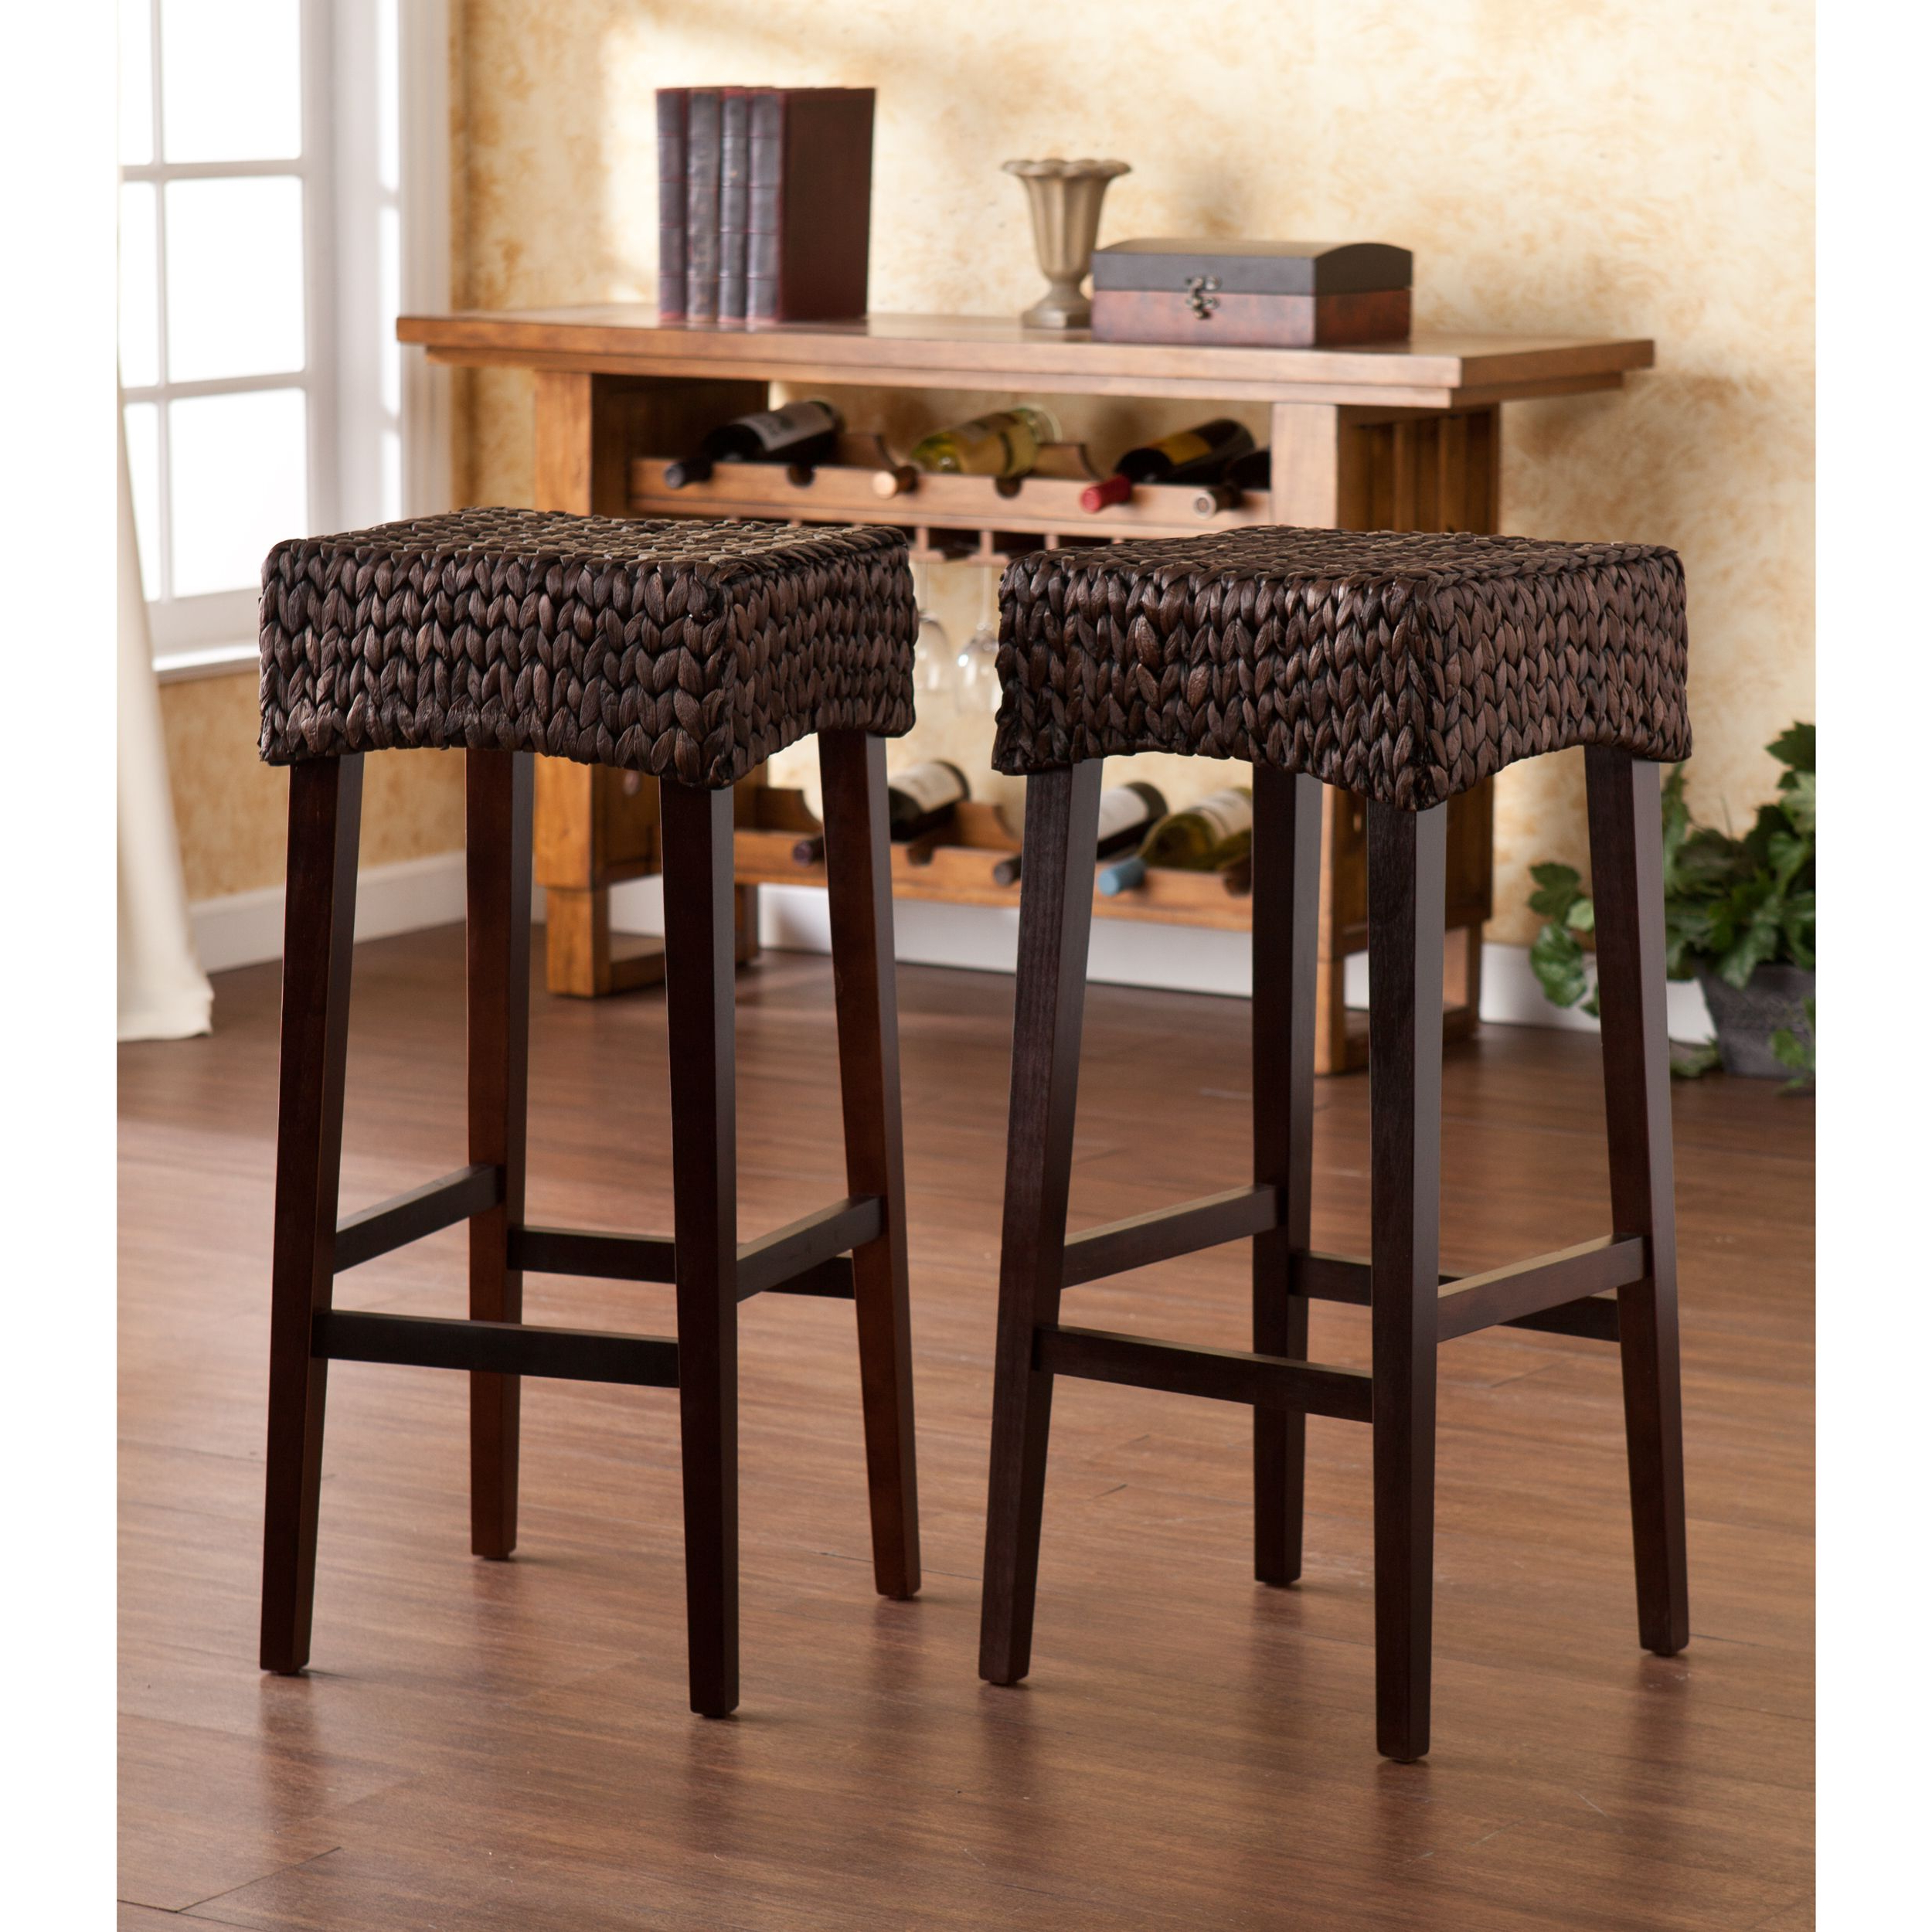 This Pair Of 30 Inch Bar Height Stools Features Beautiful With Regard To Widely Used The Curated Nomad Belize Woven Cocktail Tables (View 19 of 20)